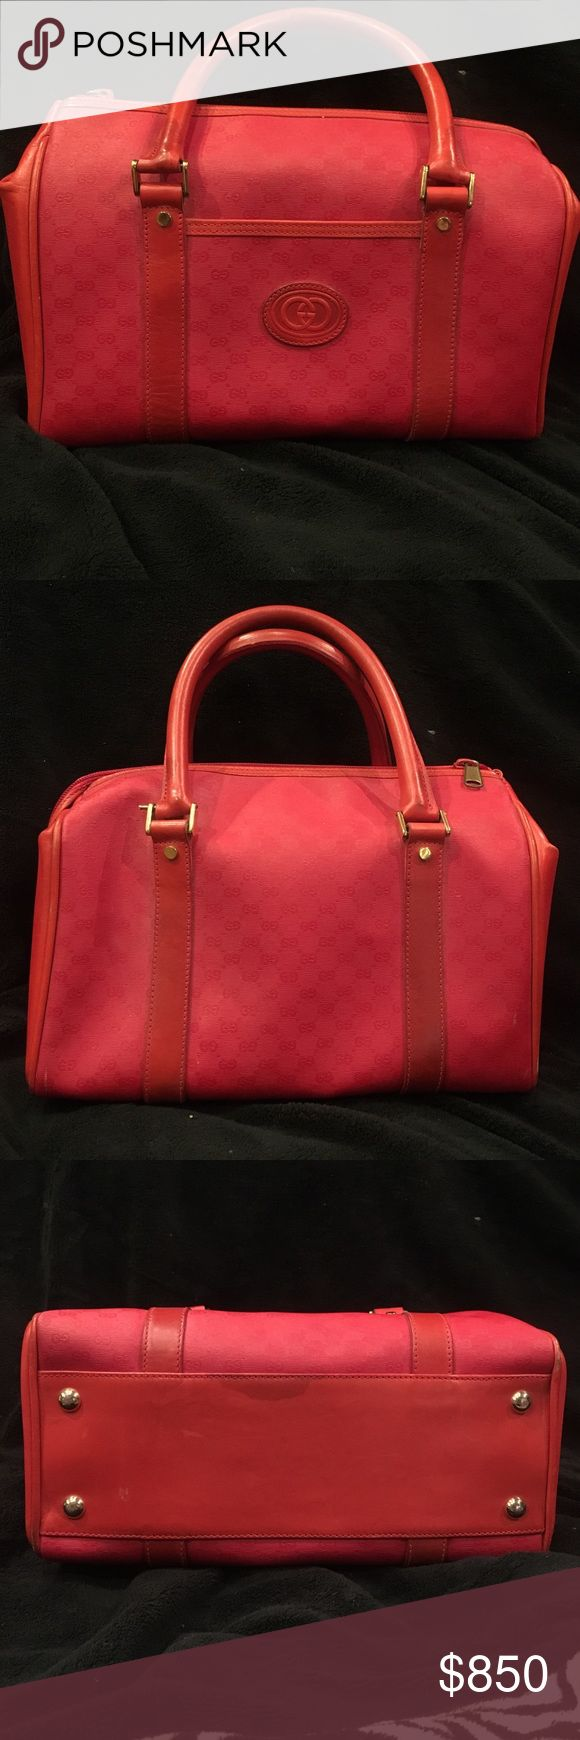 Gucci purse Authentic Gucci top handle handbag. Red. Vintage! 1980s! Great condition. Inside is a little dirty as pictured. No rips or tears! Classic Gucci! No trades. No dust bag. Price is firm! Purchased at the Gucci Store on Michigan avenue in Chicago! Gucci Bags Totes